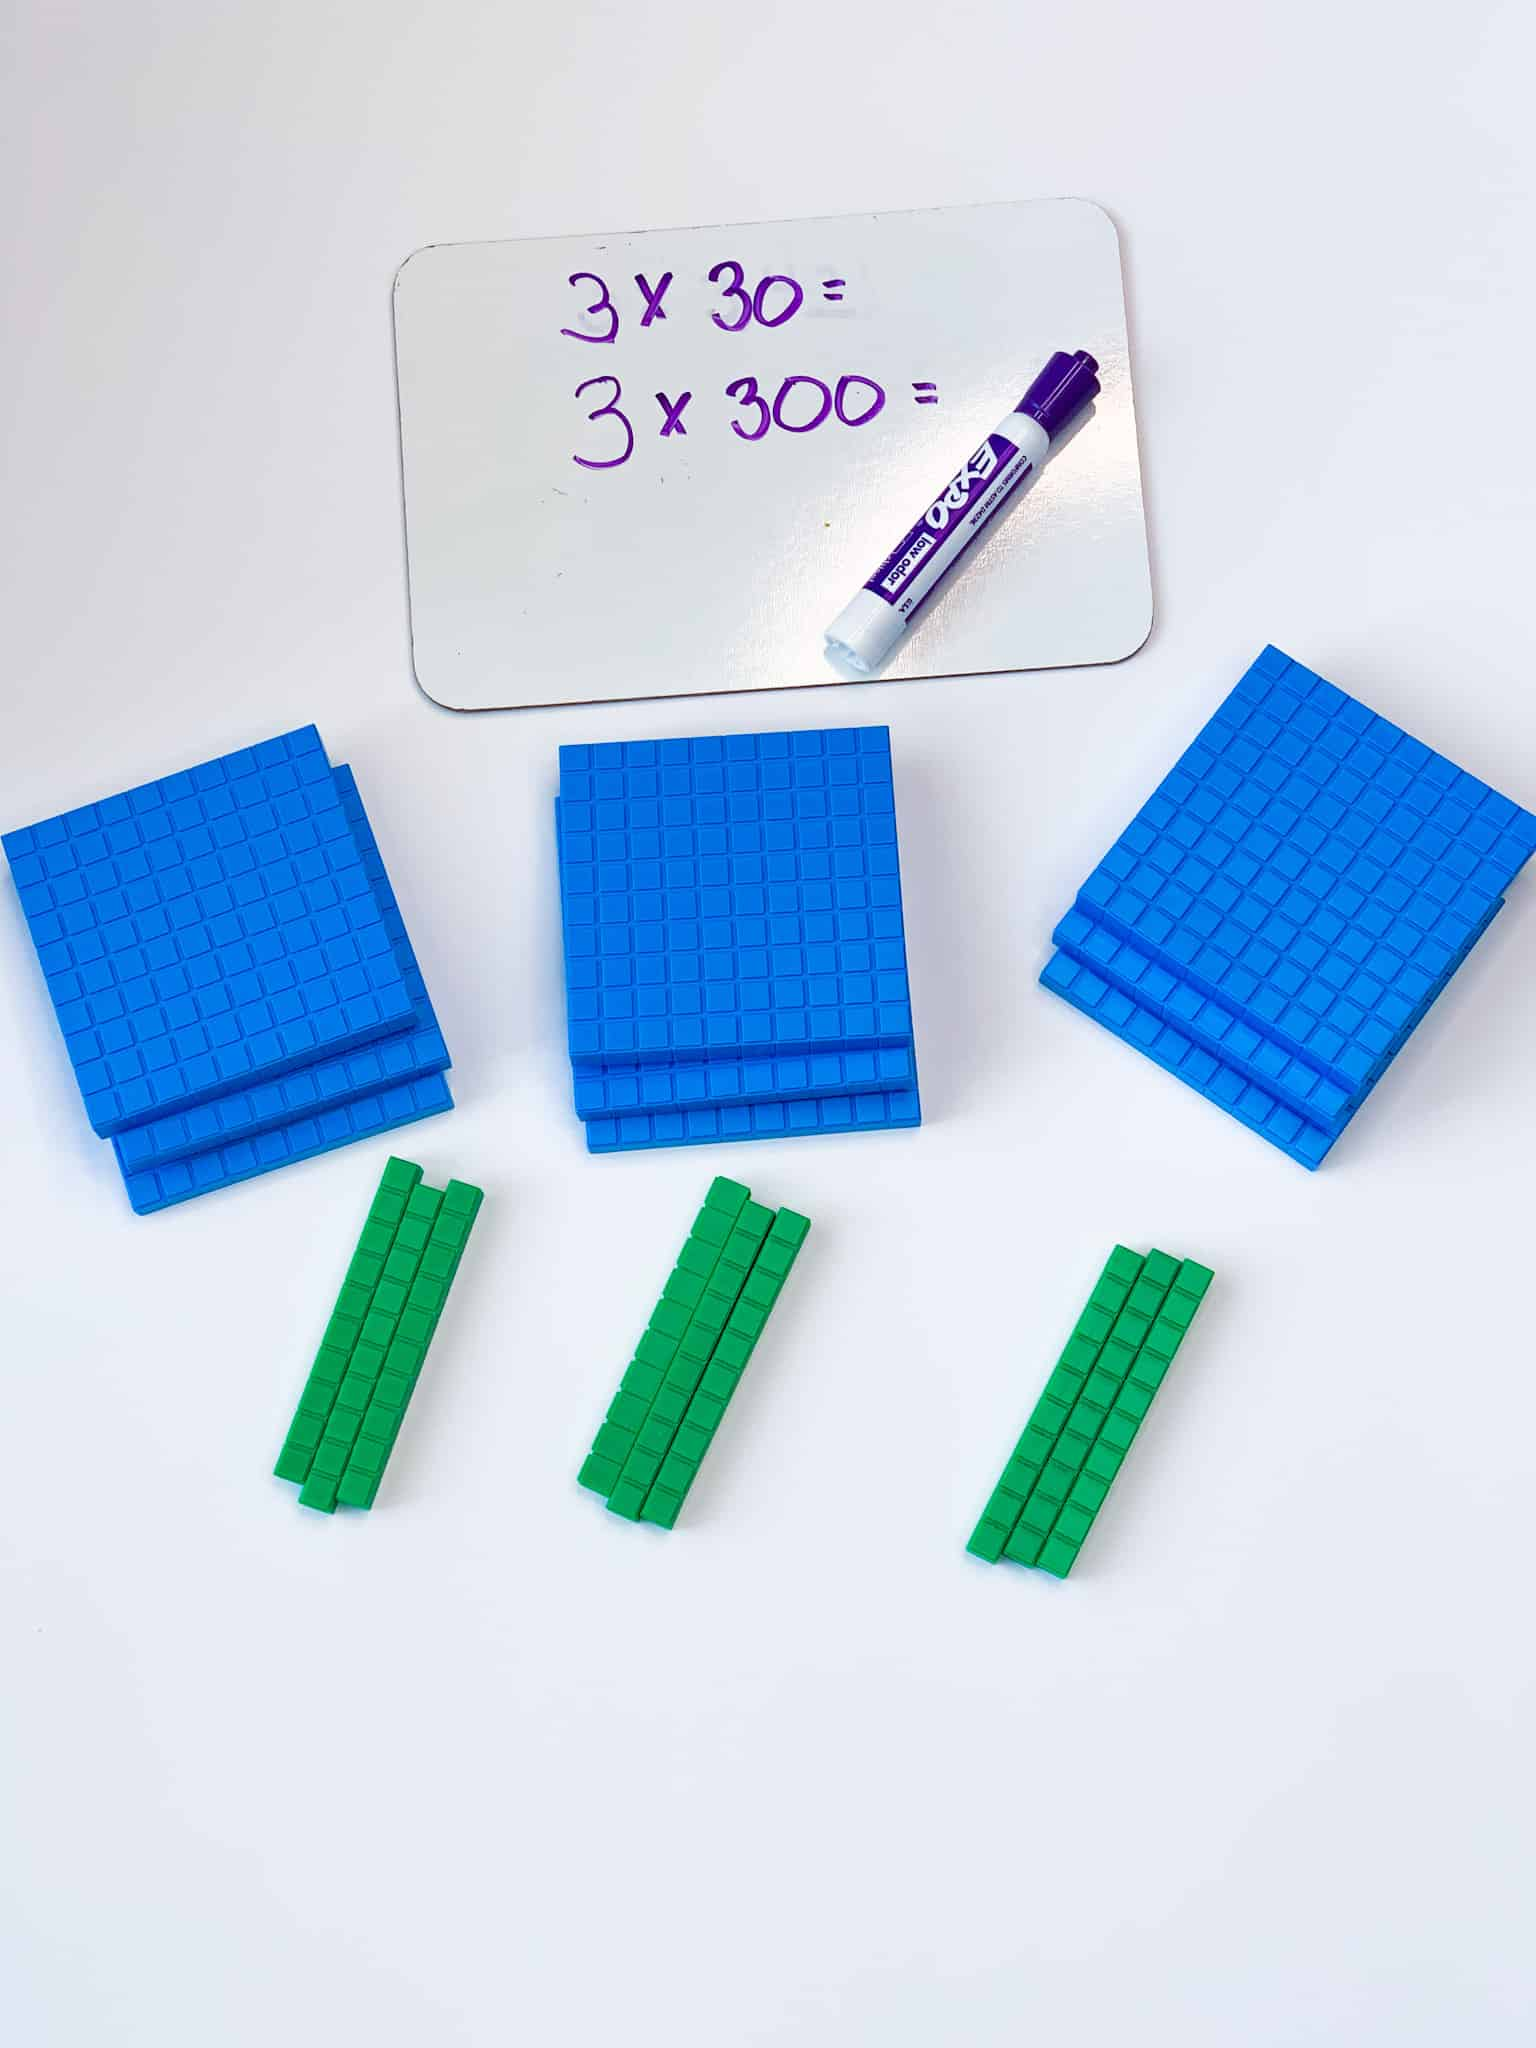 Small whiteboard with a math problem next to several sets of base-ten blocks for teaching the value of digits in math